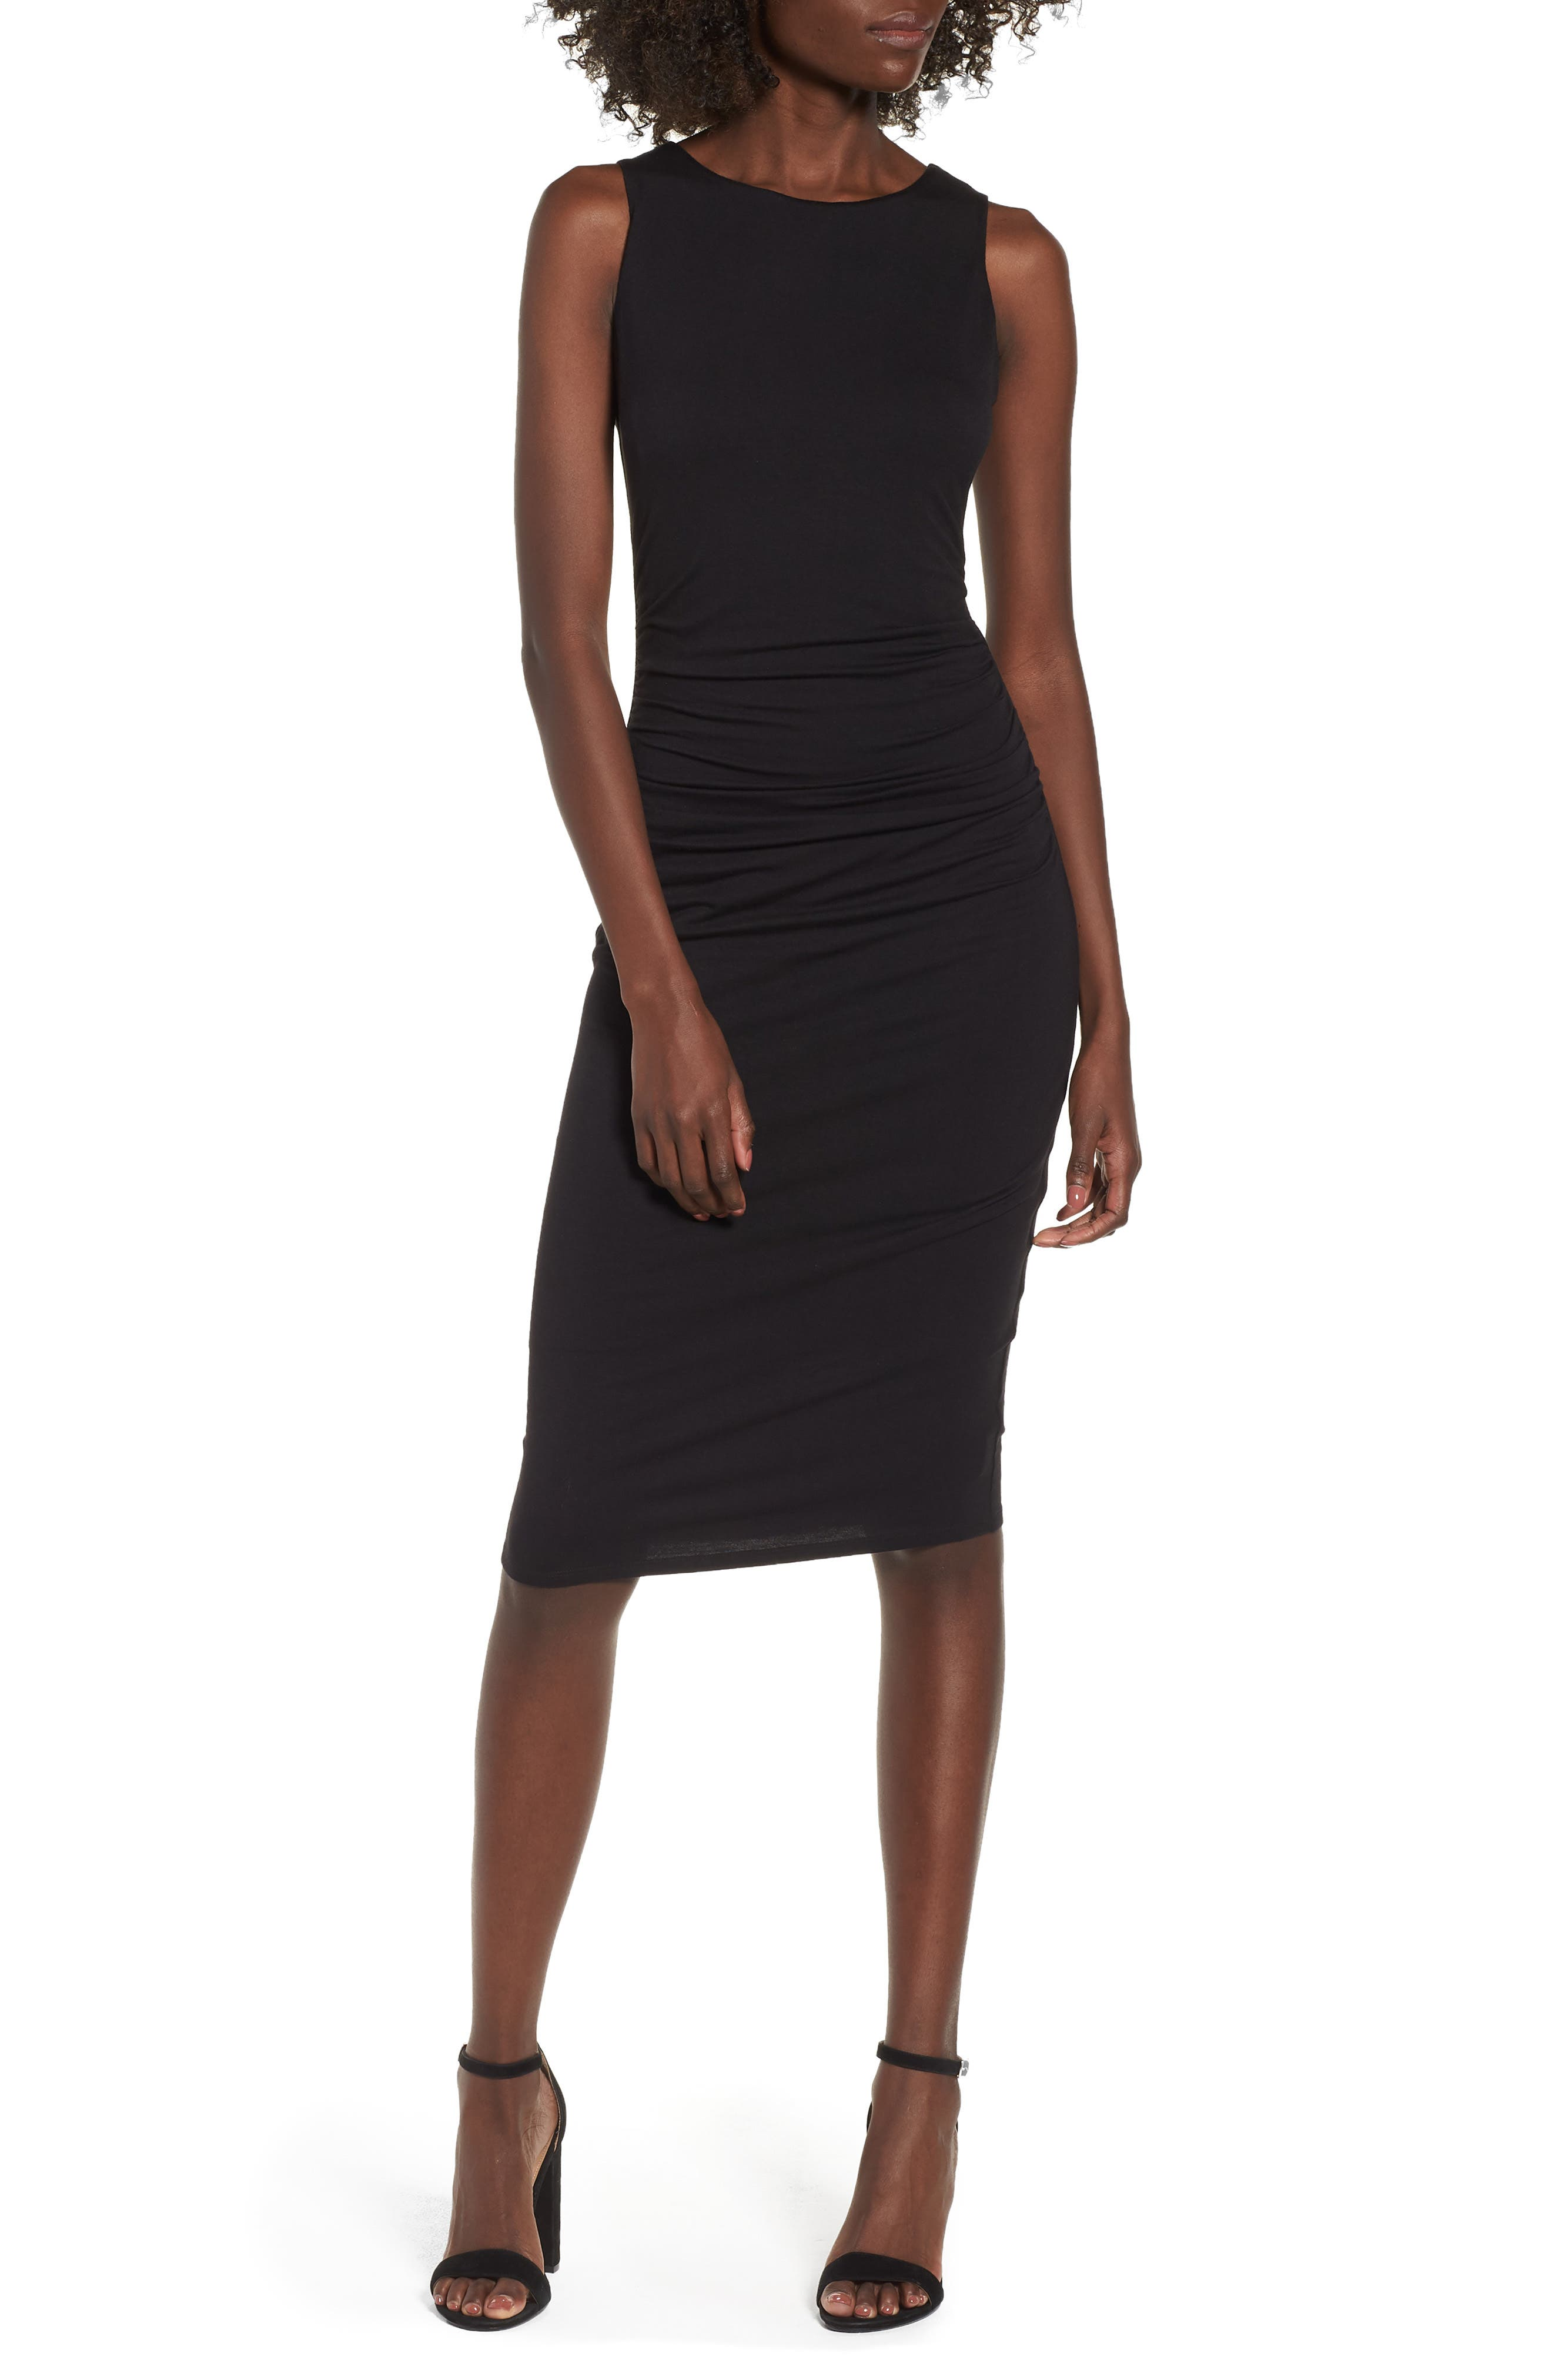 Socialite Ruched Sheath Dress